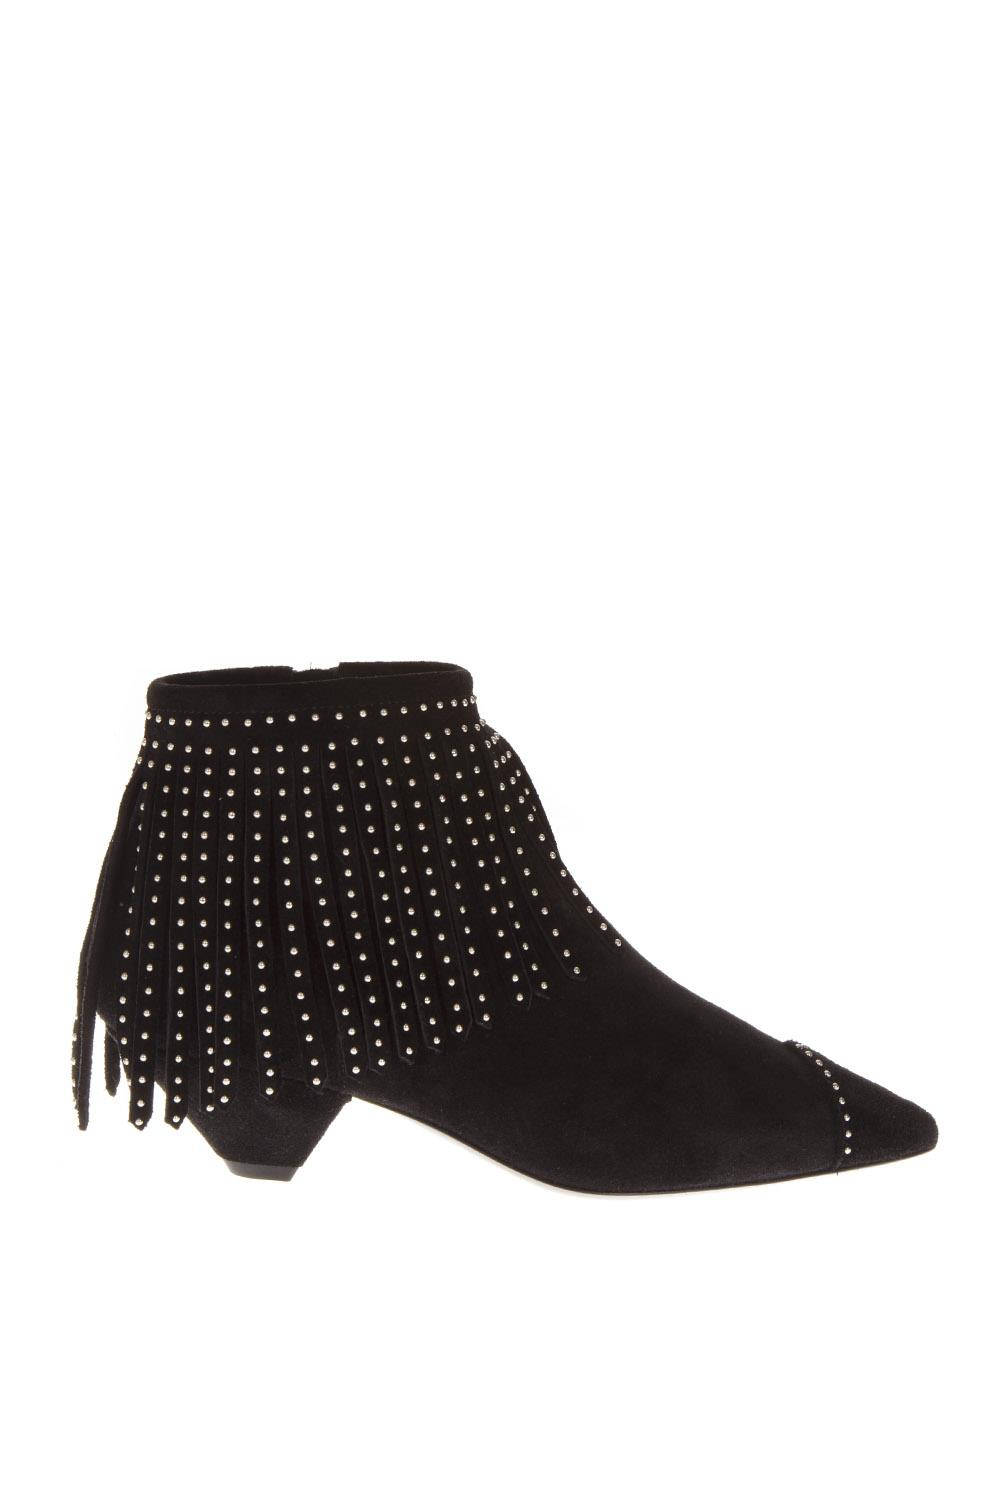 Blaze Suede Laurent Fringed 45 2018 Fw Boots Black Saint Ankle rWrB6FU